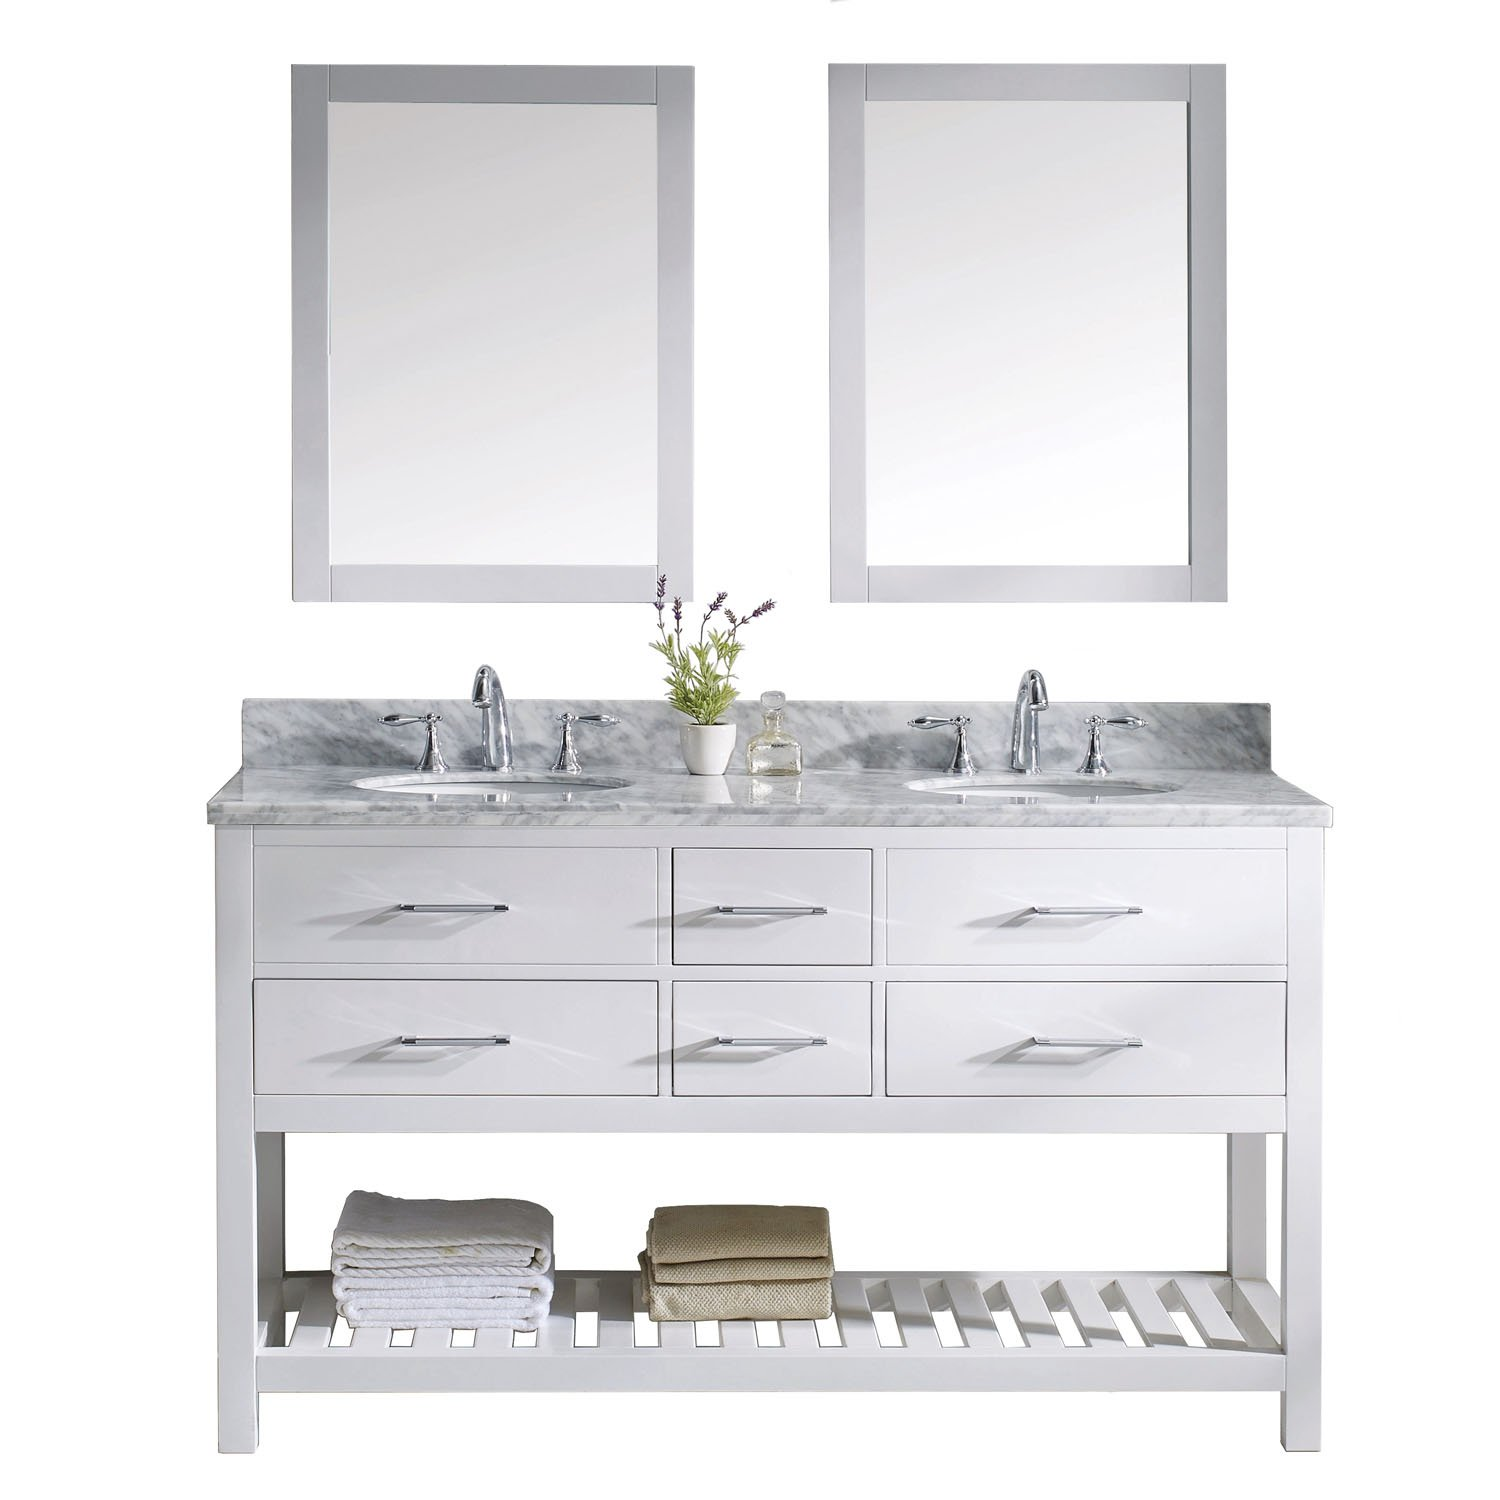 Virtu USA MD-2260-WMRO-WH Transitional 60-Inch Double Sink Bathroom ...